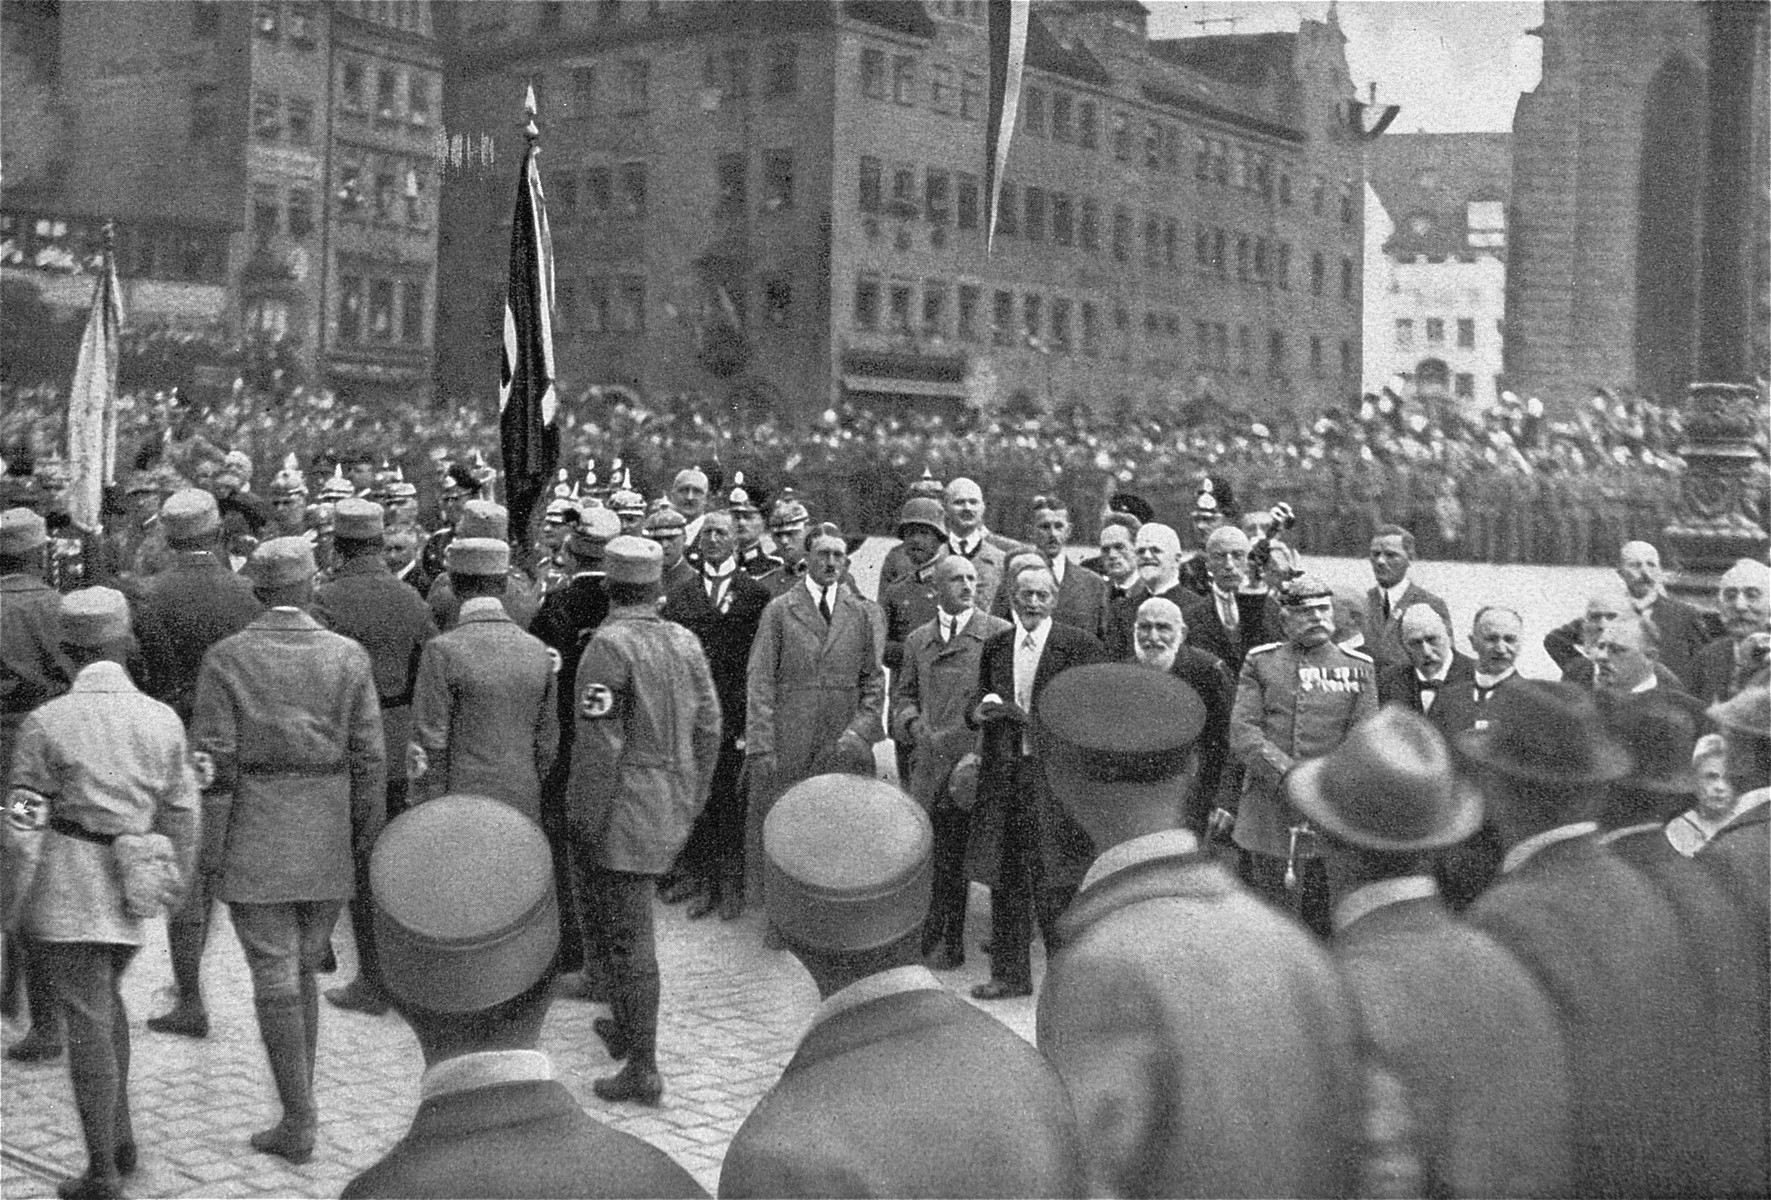 Adolf Hitler, Julius Streicher and other dignitaries review passing Nazi Party members at the Deutscher Tag [German Day] celebration in Nuremberg.  The German Day rally was the prototype of the official Nazi Party Day rallies held in Nuremberg after the seizure of power in 1933.